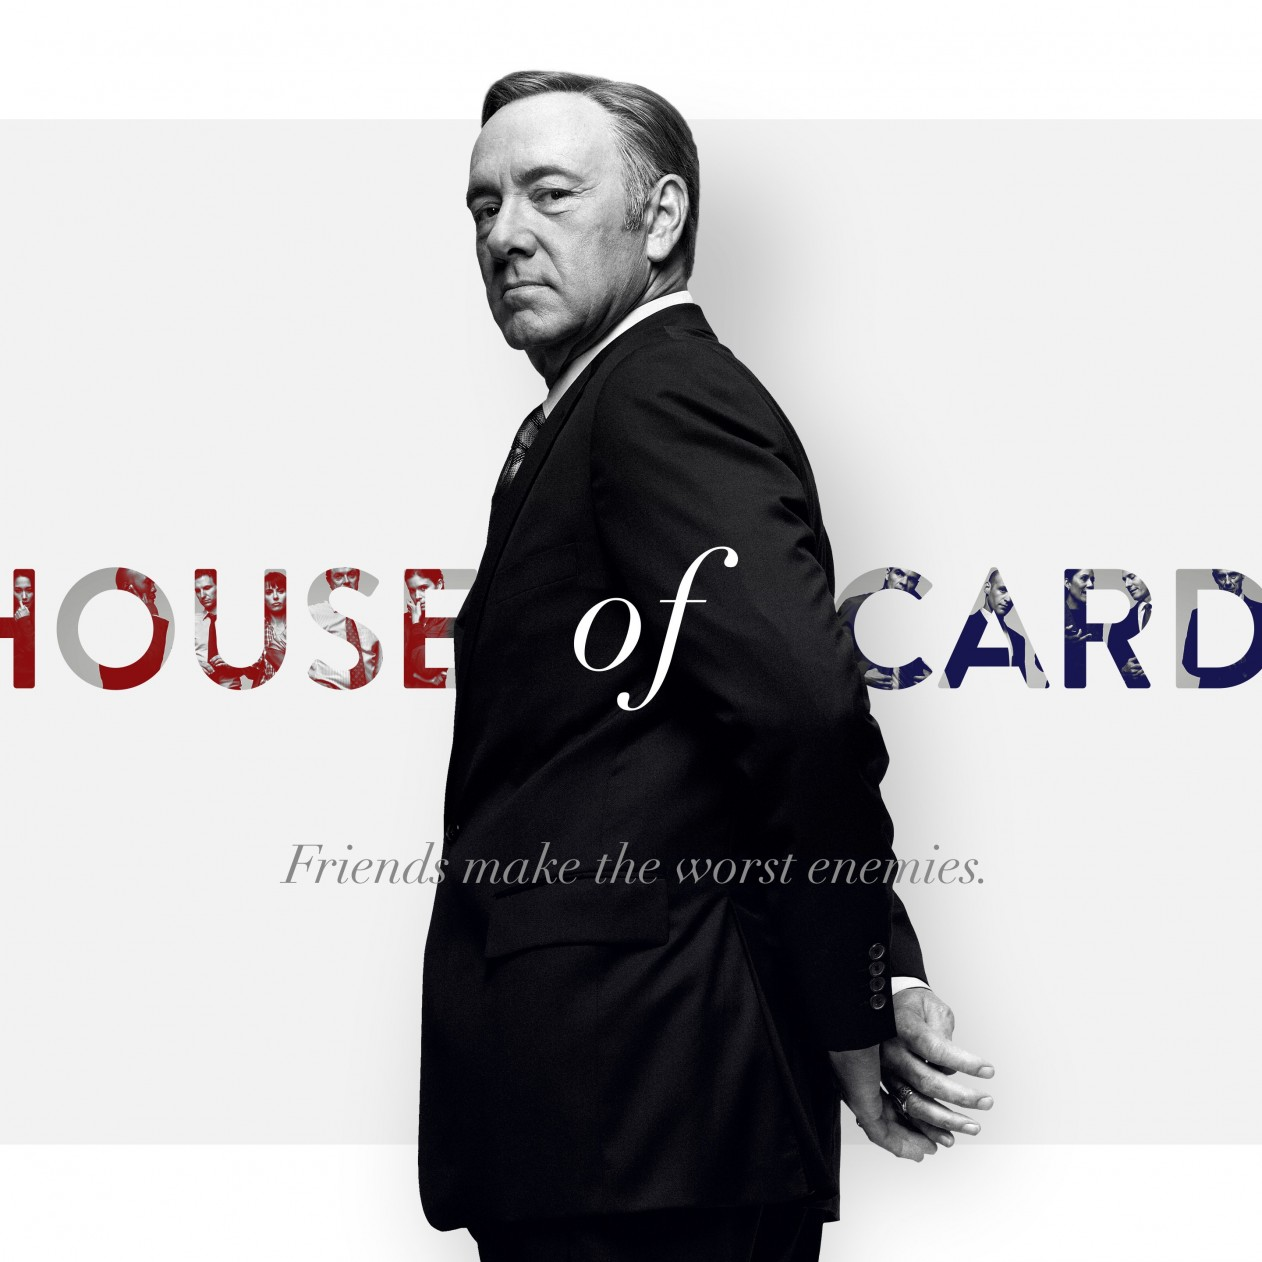 Frank Underwood - House of Cards Wallpaper for Apple iPad mini